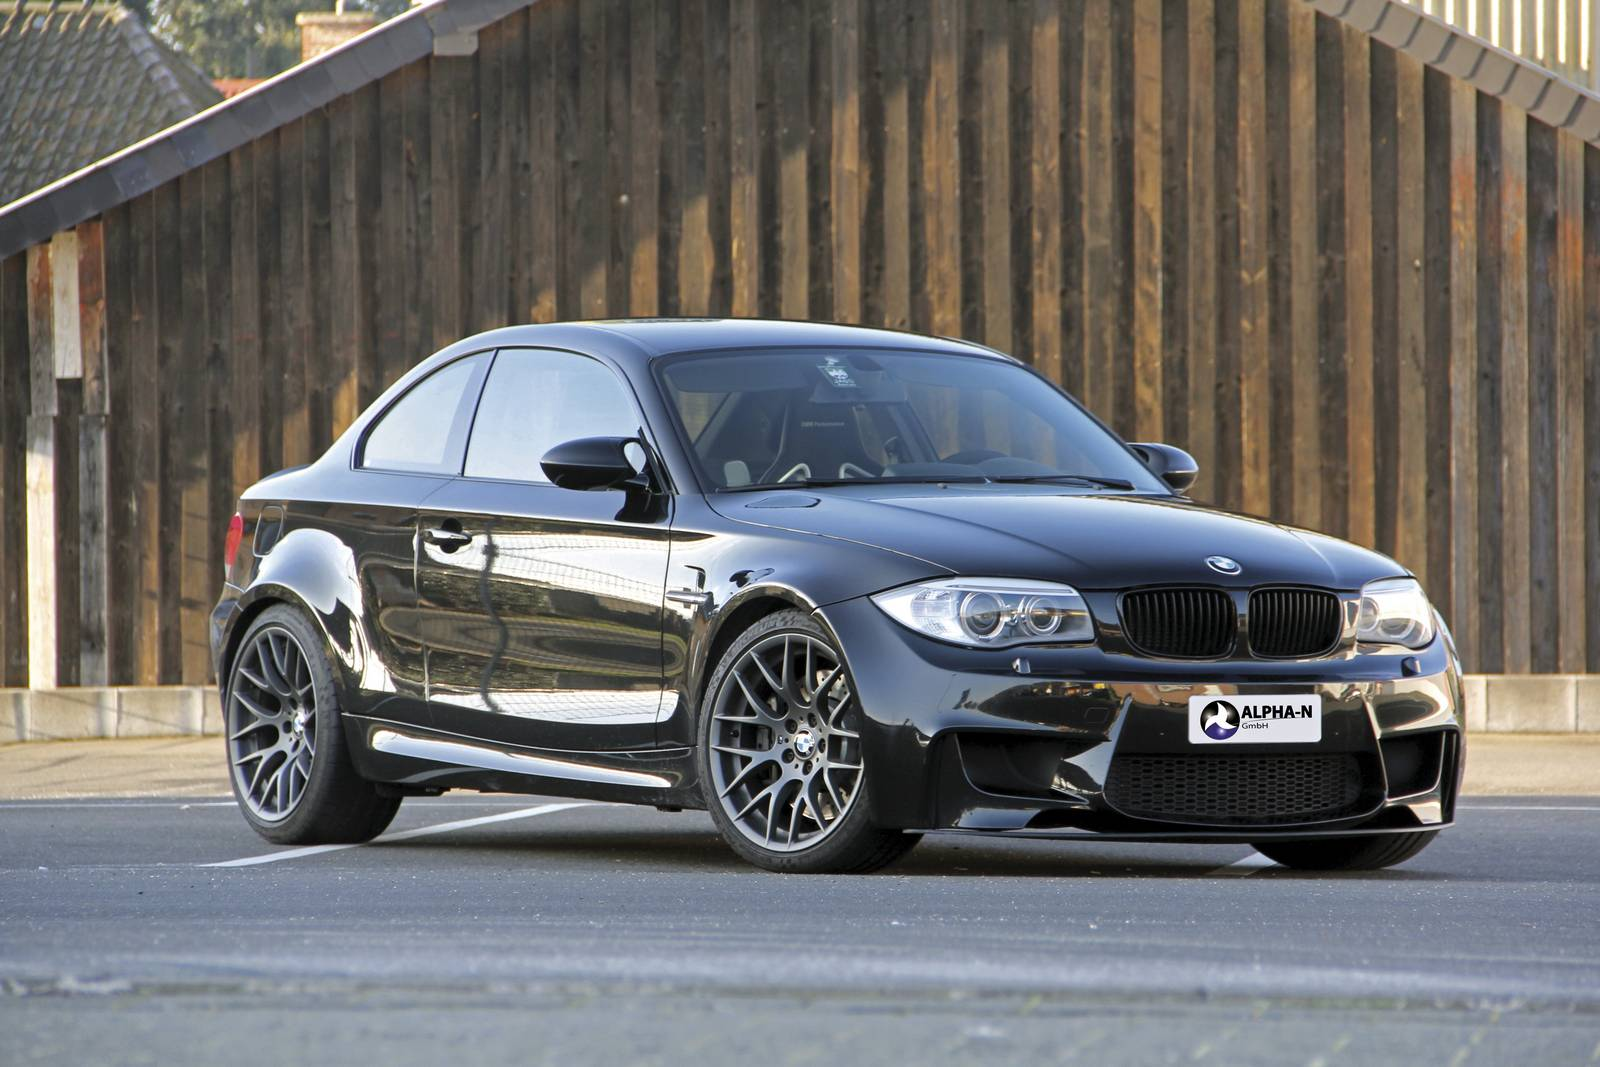 Official: 564hp BMW 1 Series M Coupe by Alpha-N Performance - GTspirit